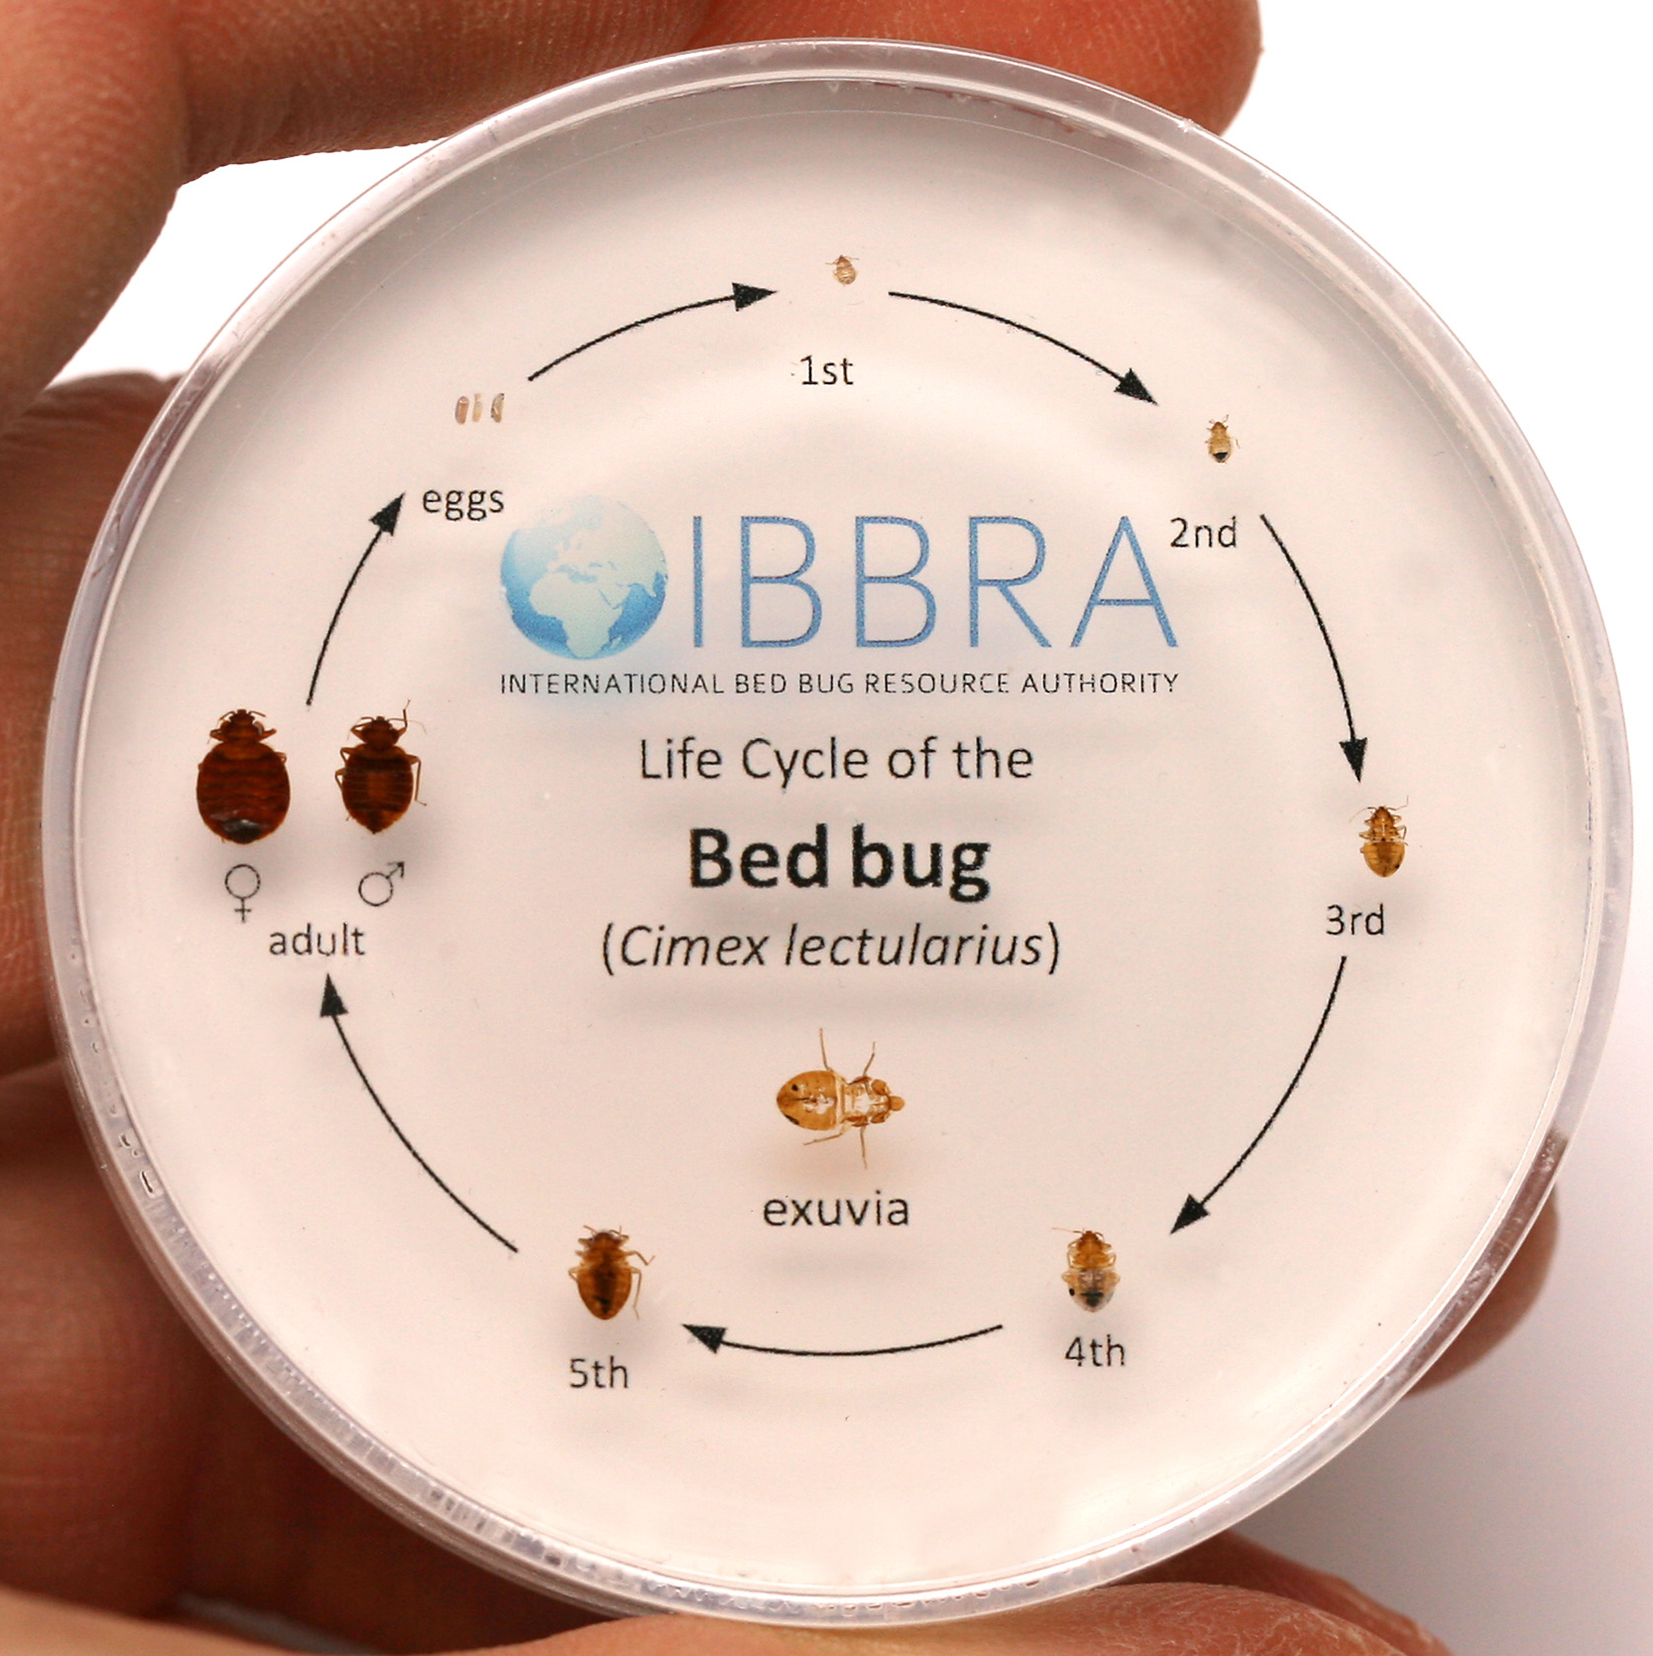 Do you know about the life cycle of bed bugs? Here are